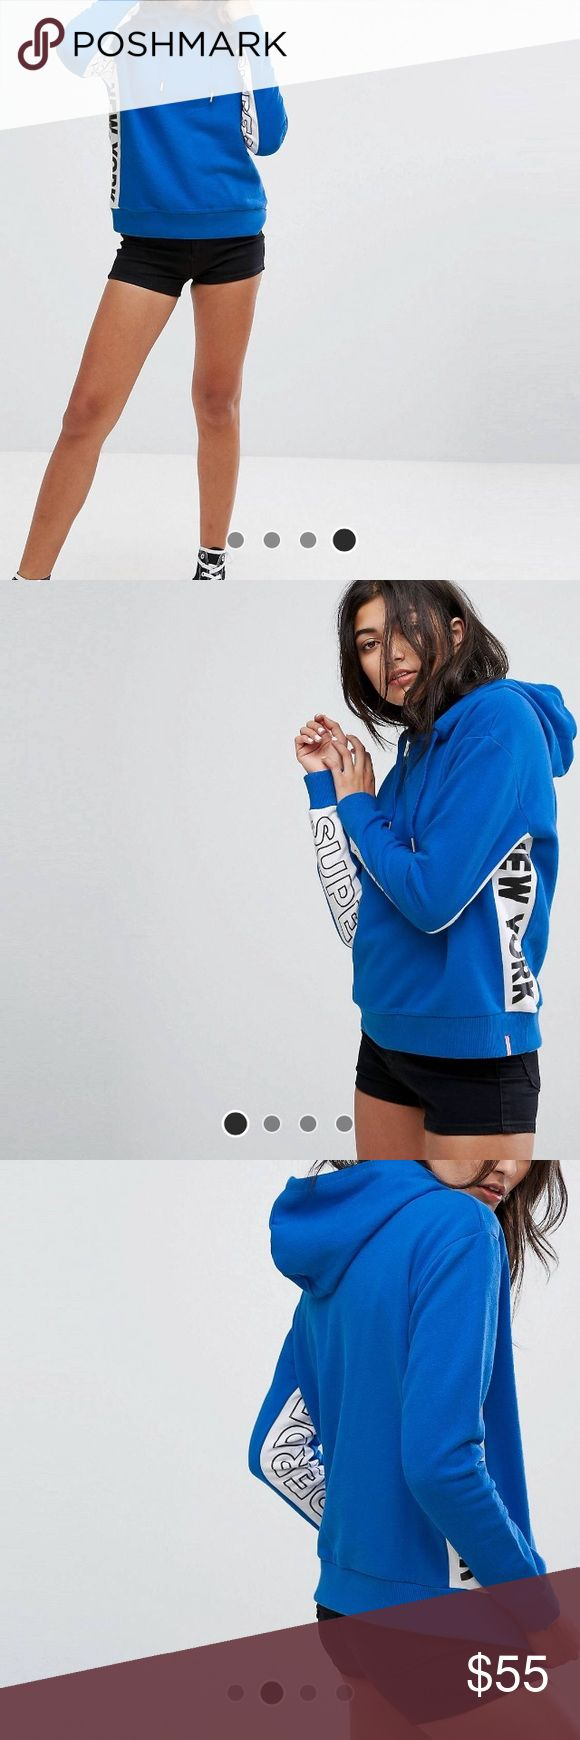 Superdry Hoodie with Taped Logo Sleeve Only worn once. Brand new! Super warm, cute and comfy! Beautiful bright blue color. Superdry Tops Sweatshirts & Hoodies